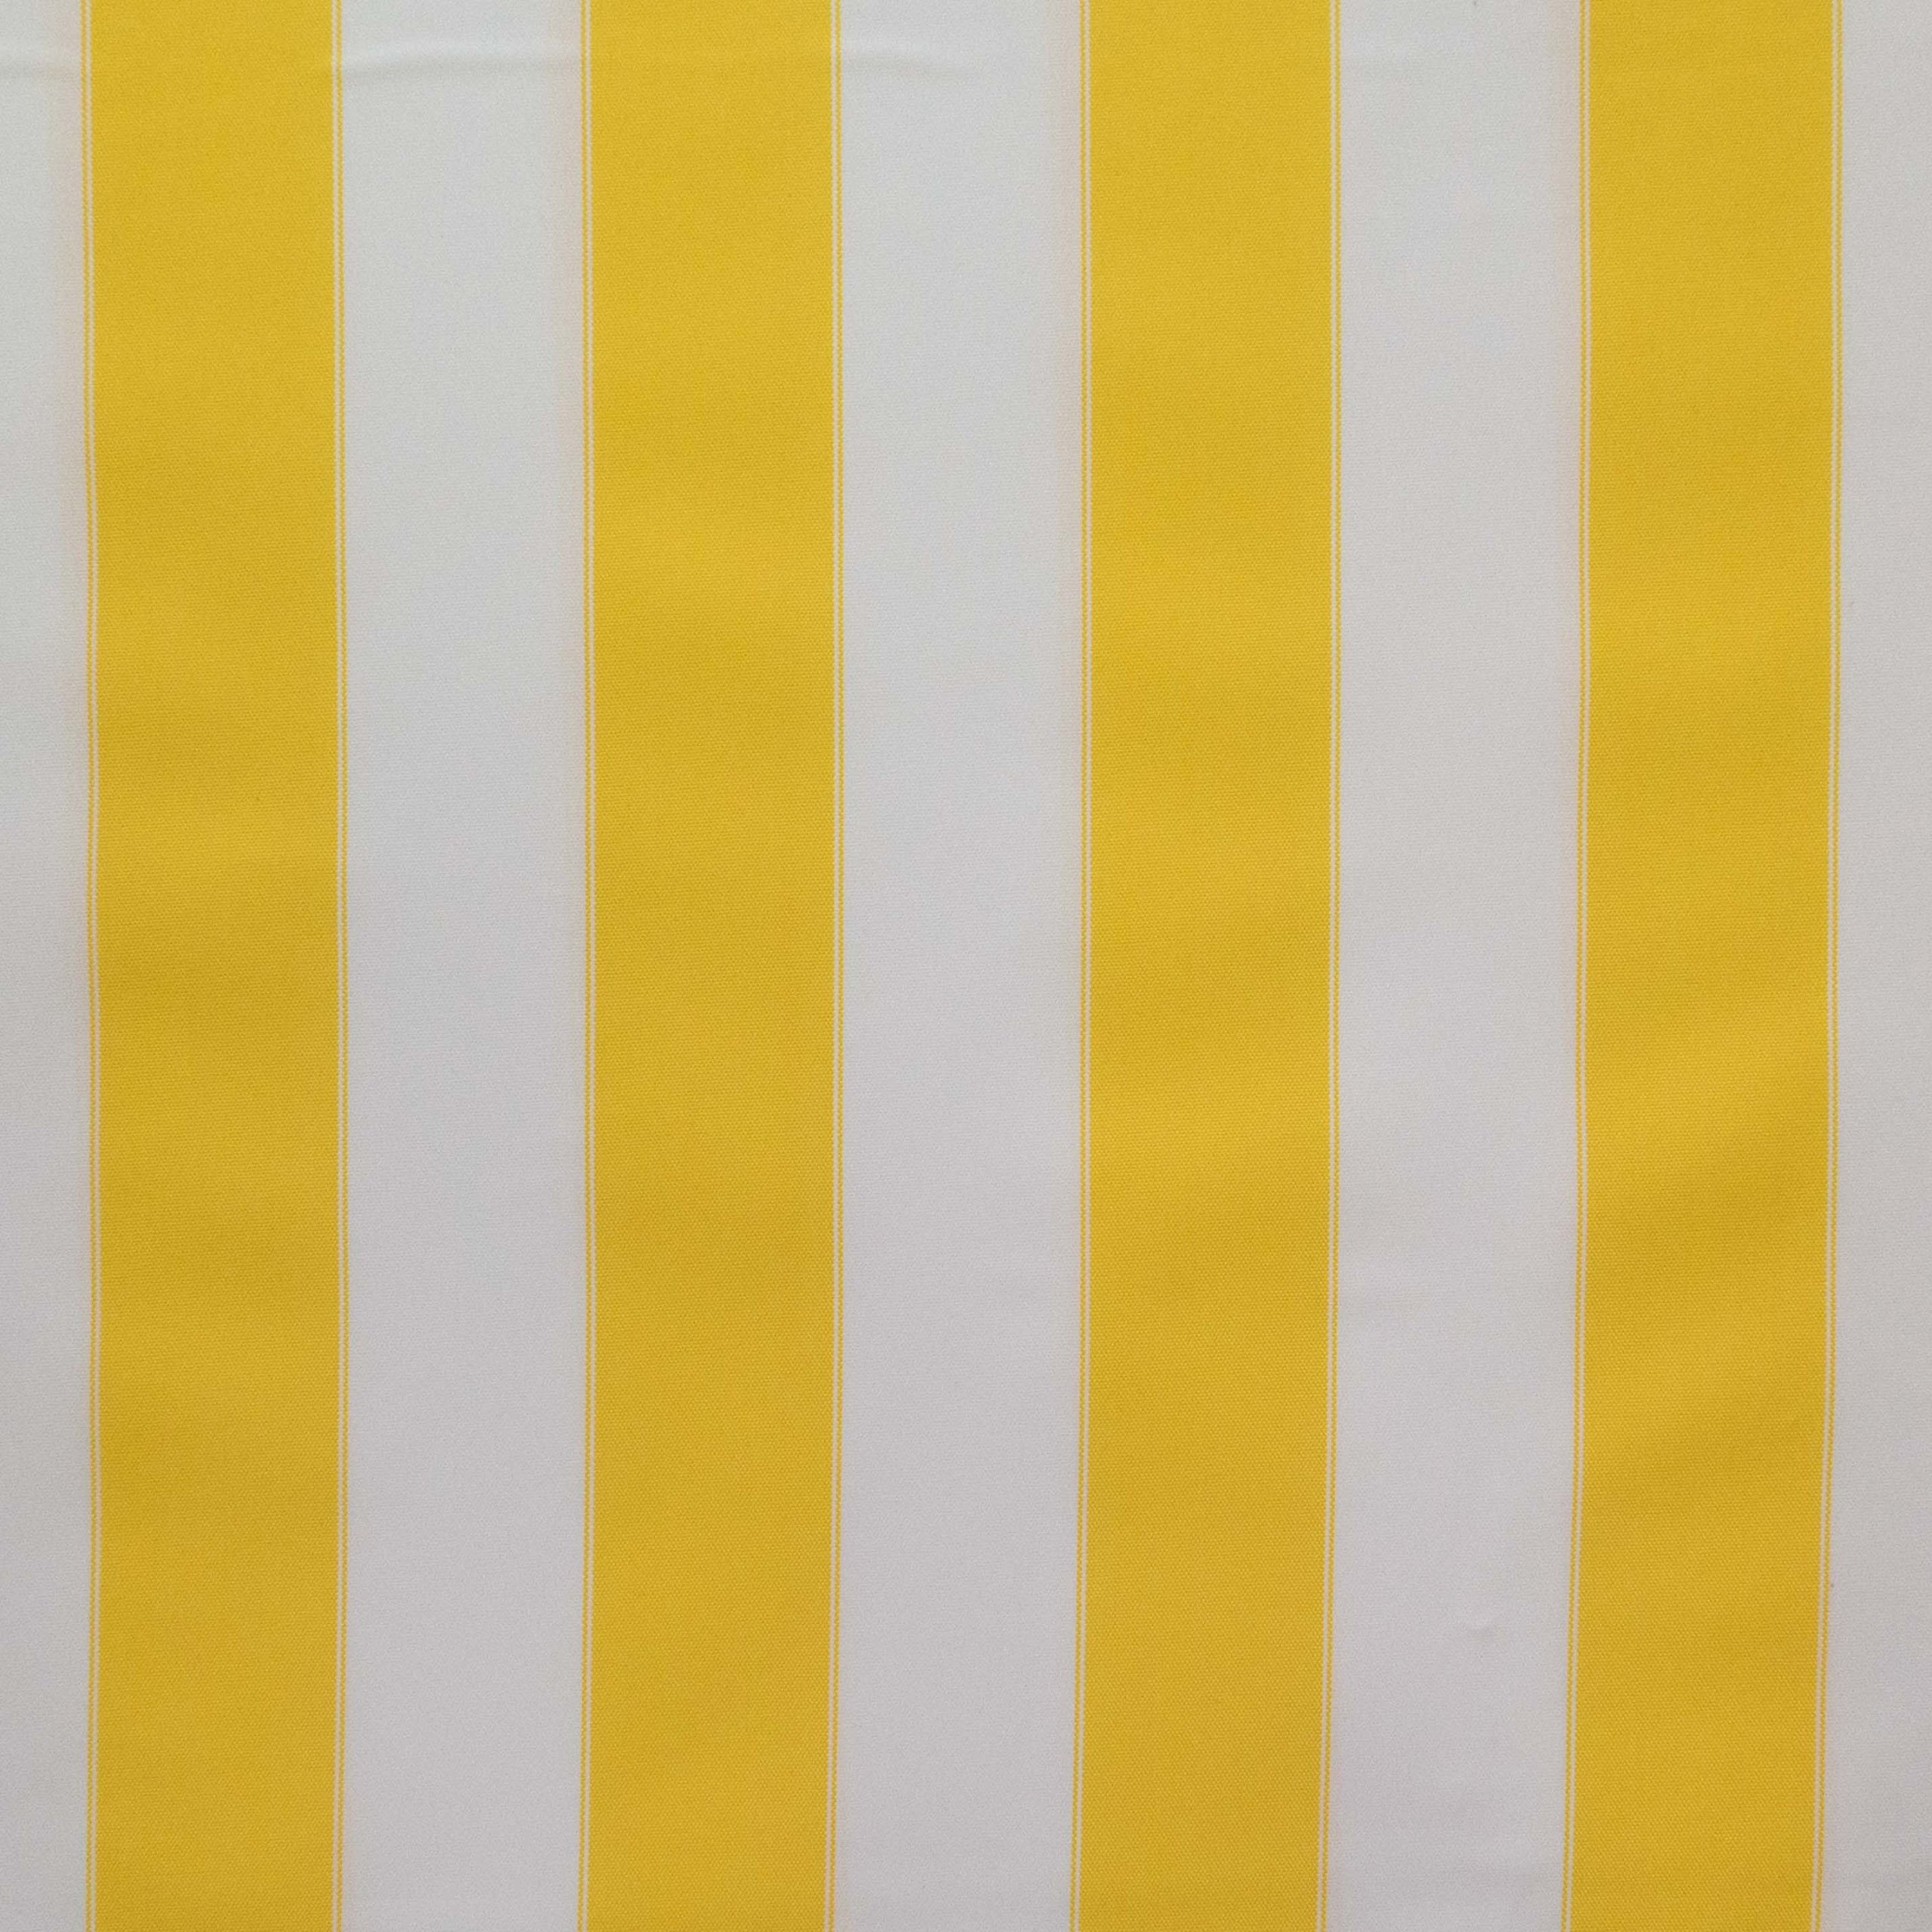 Stripe Indoor Outdoor Waterproof Canvas Yellow White Fabric by The Yard (F.E.)